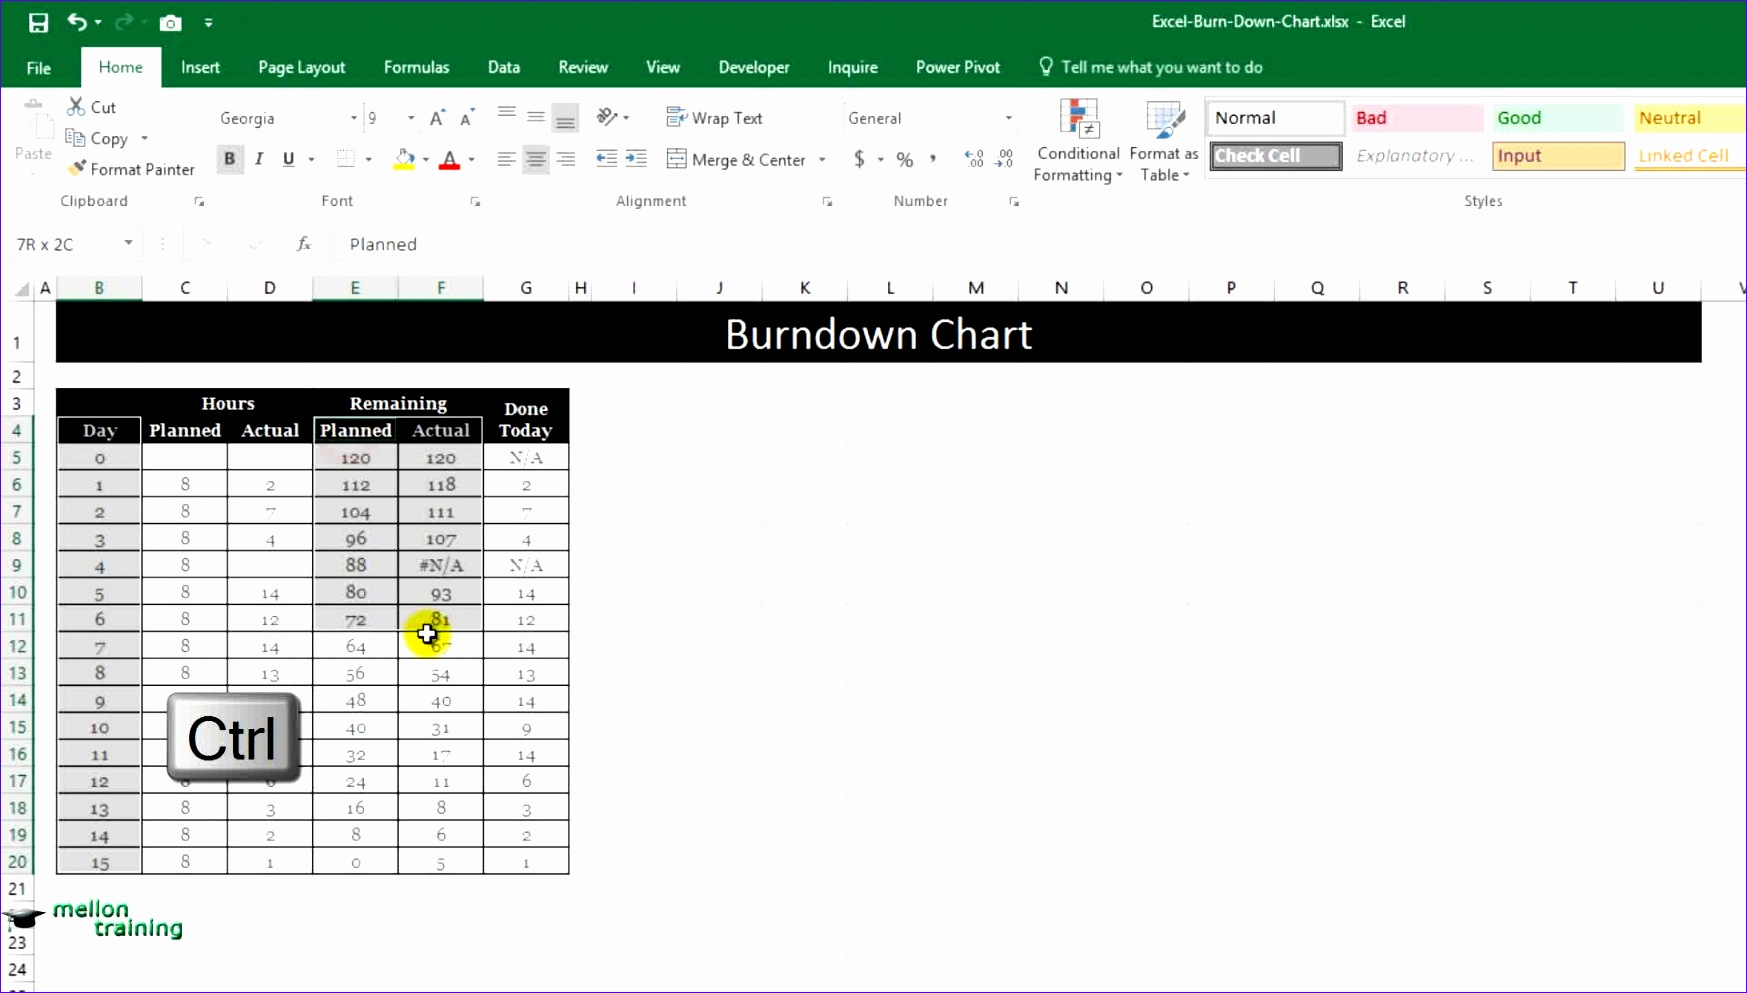 Pareto Chart Excel Template Free Evnzf New Microsoft Excel Charts for Beginners